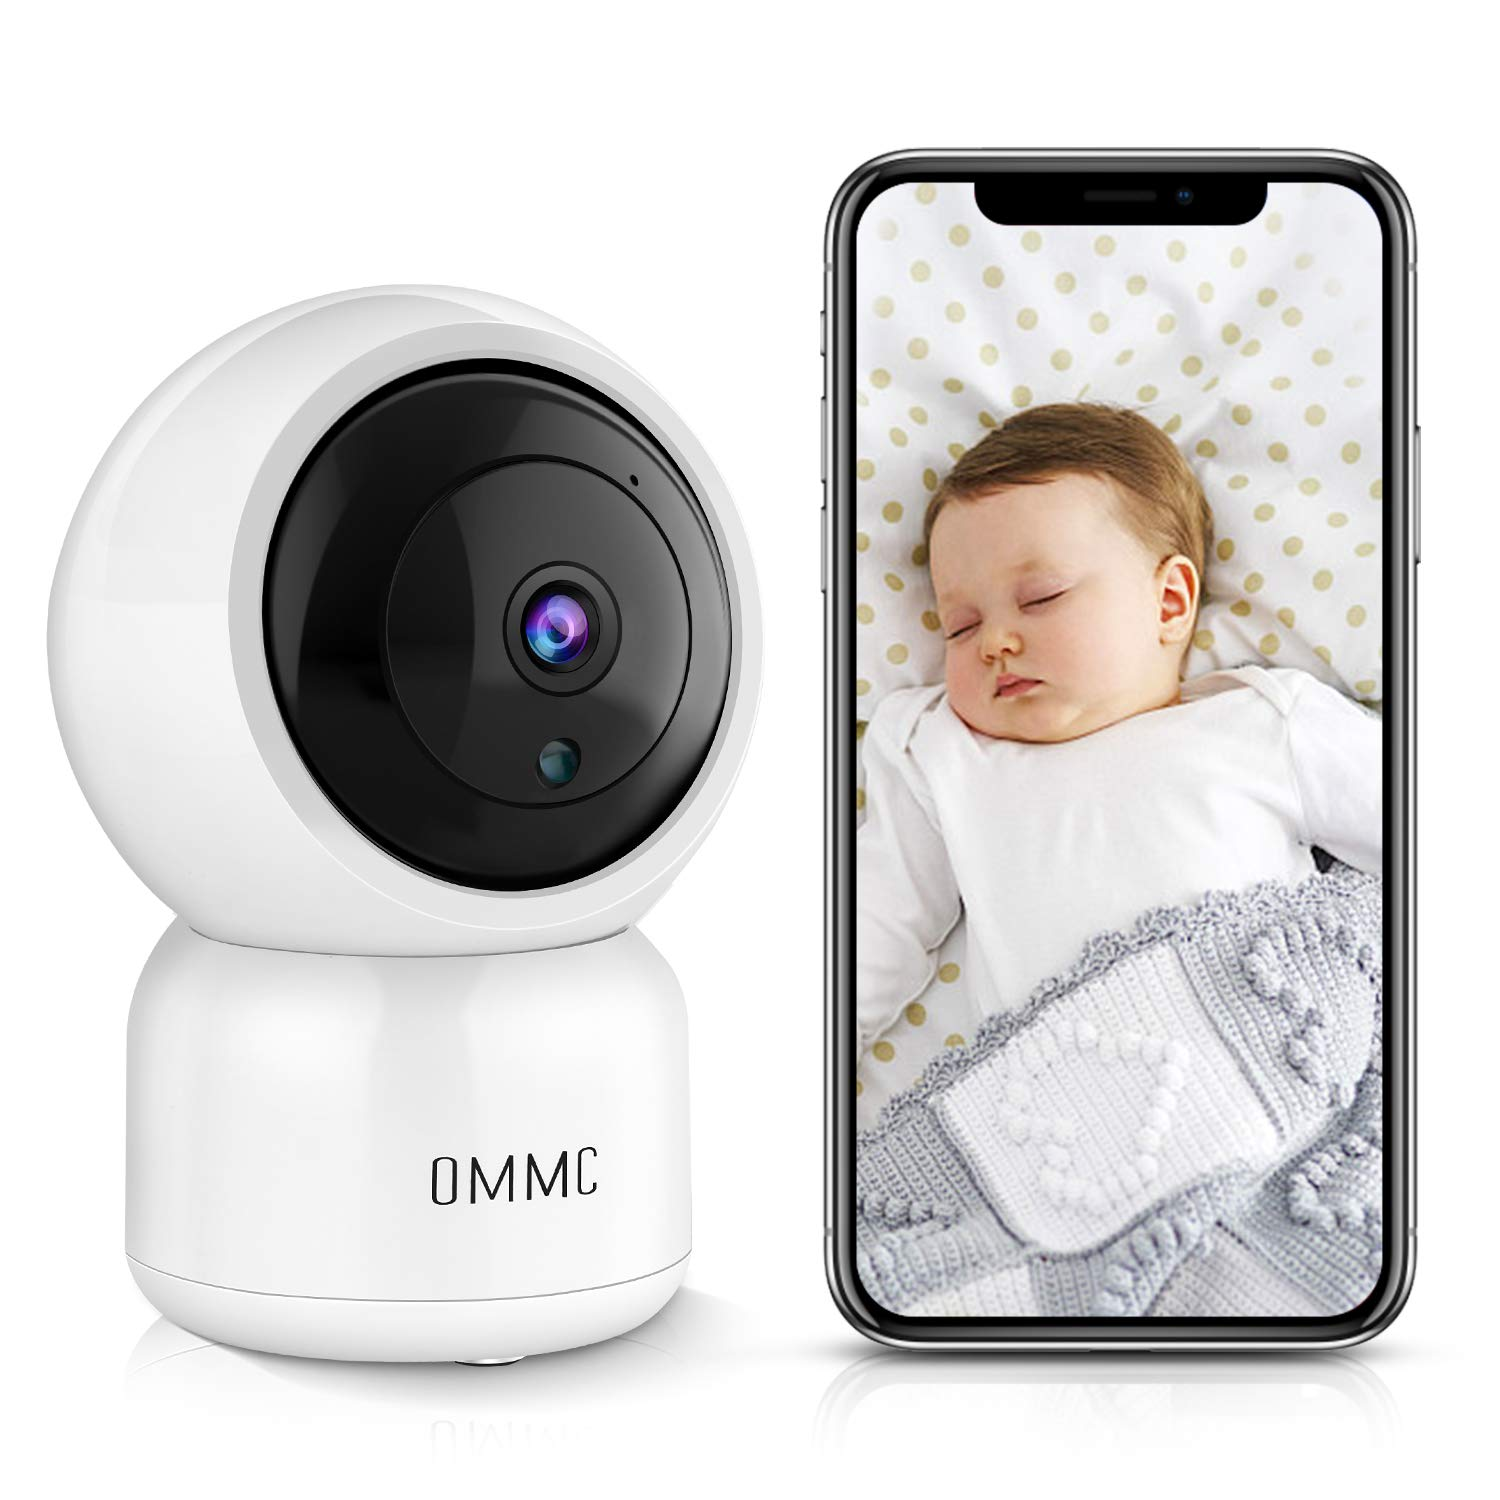 OMMC Wireless Security Camera 1080P, Baby Monitor Home IP Camera with Night Vision/2-Way Audio/Motion Detection,Works with Alexa by OMMC